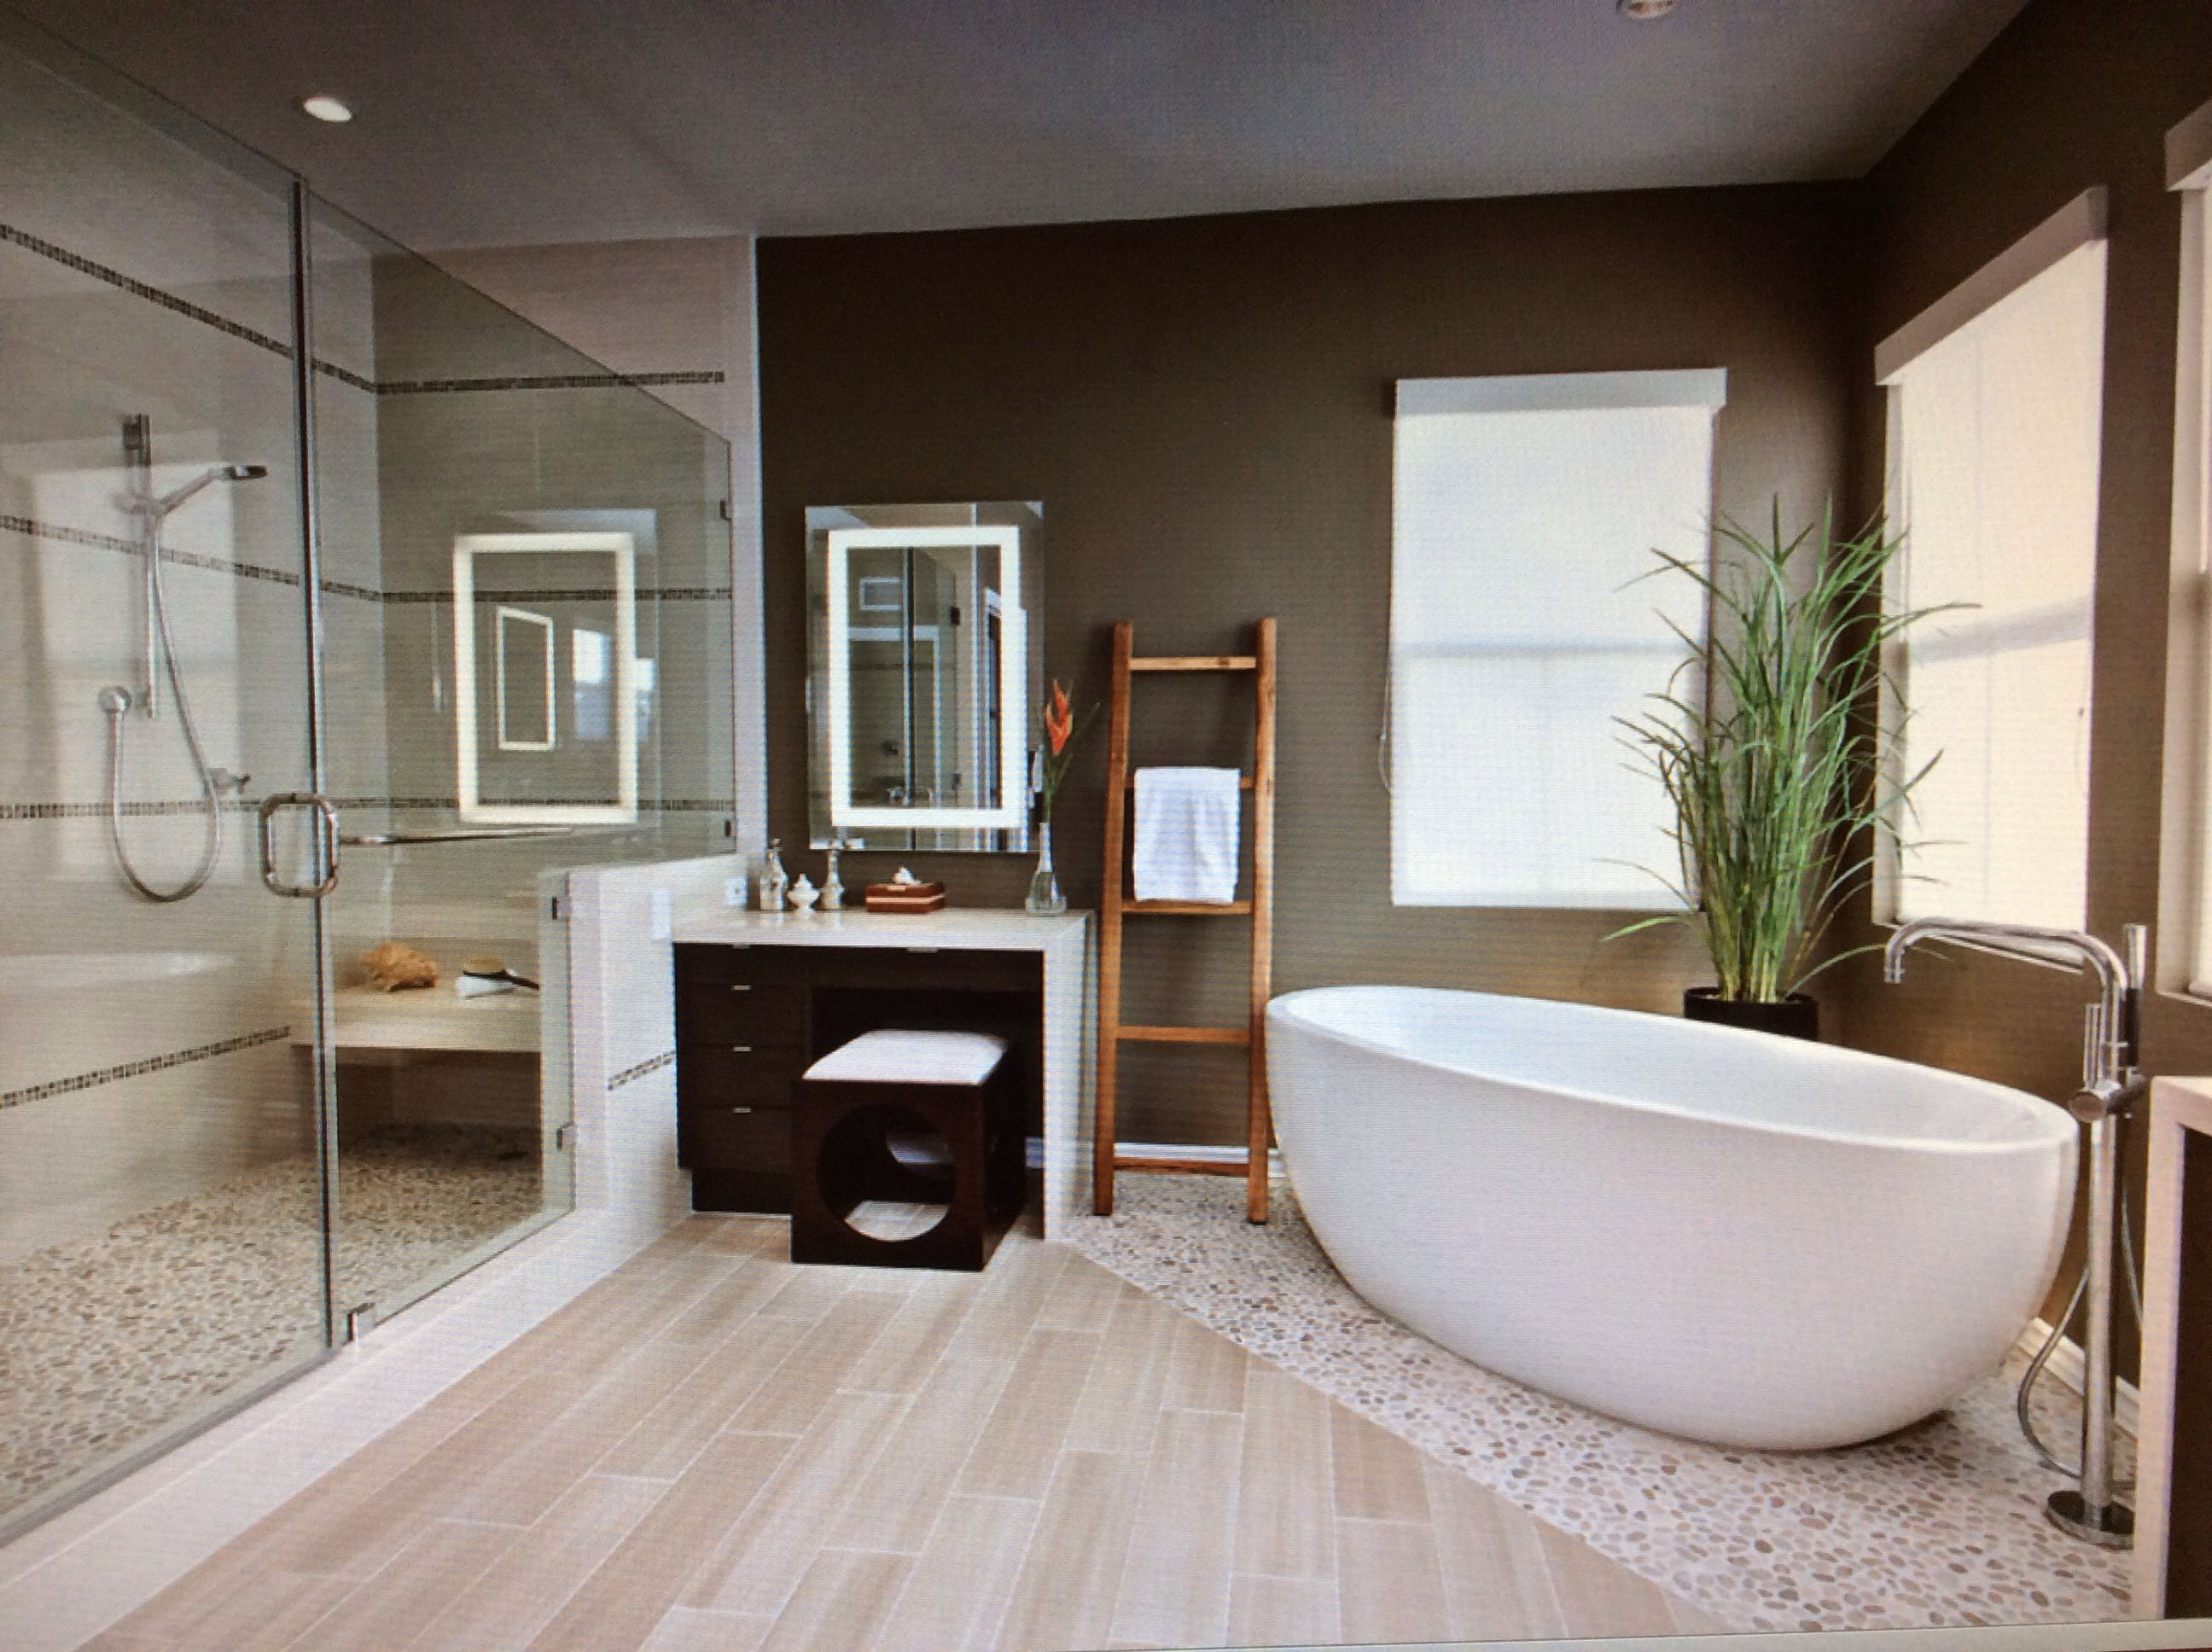 Such A Lovely Bathroom With A Large Shower And Soaking Tub The